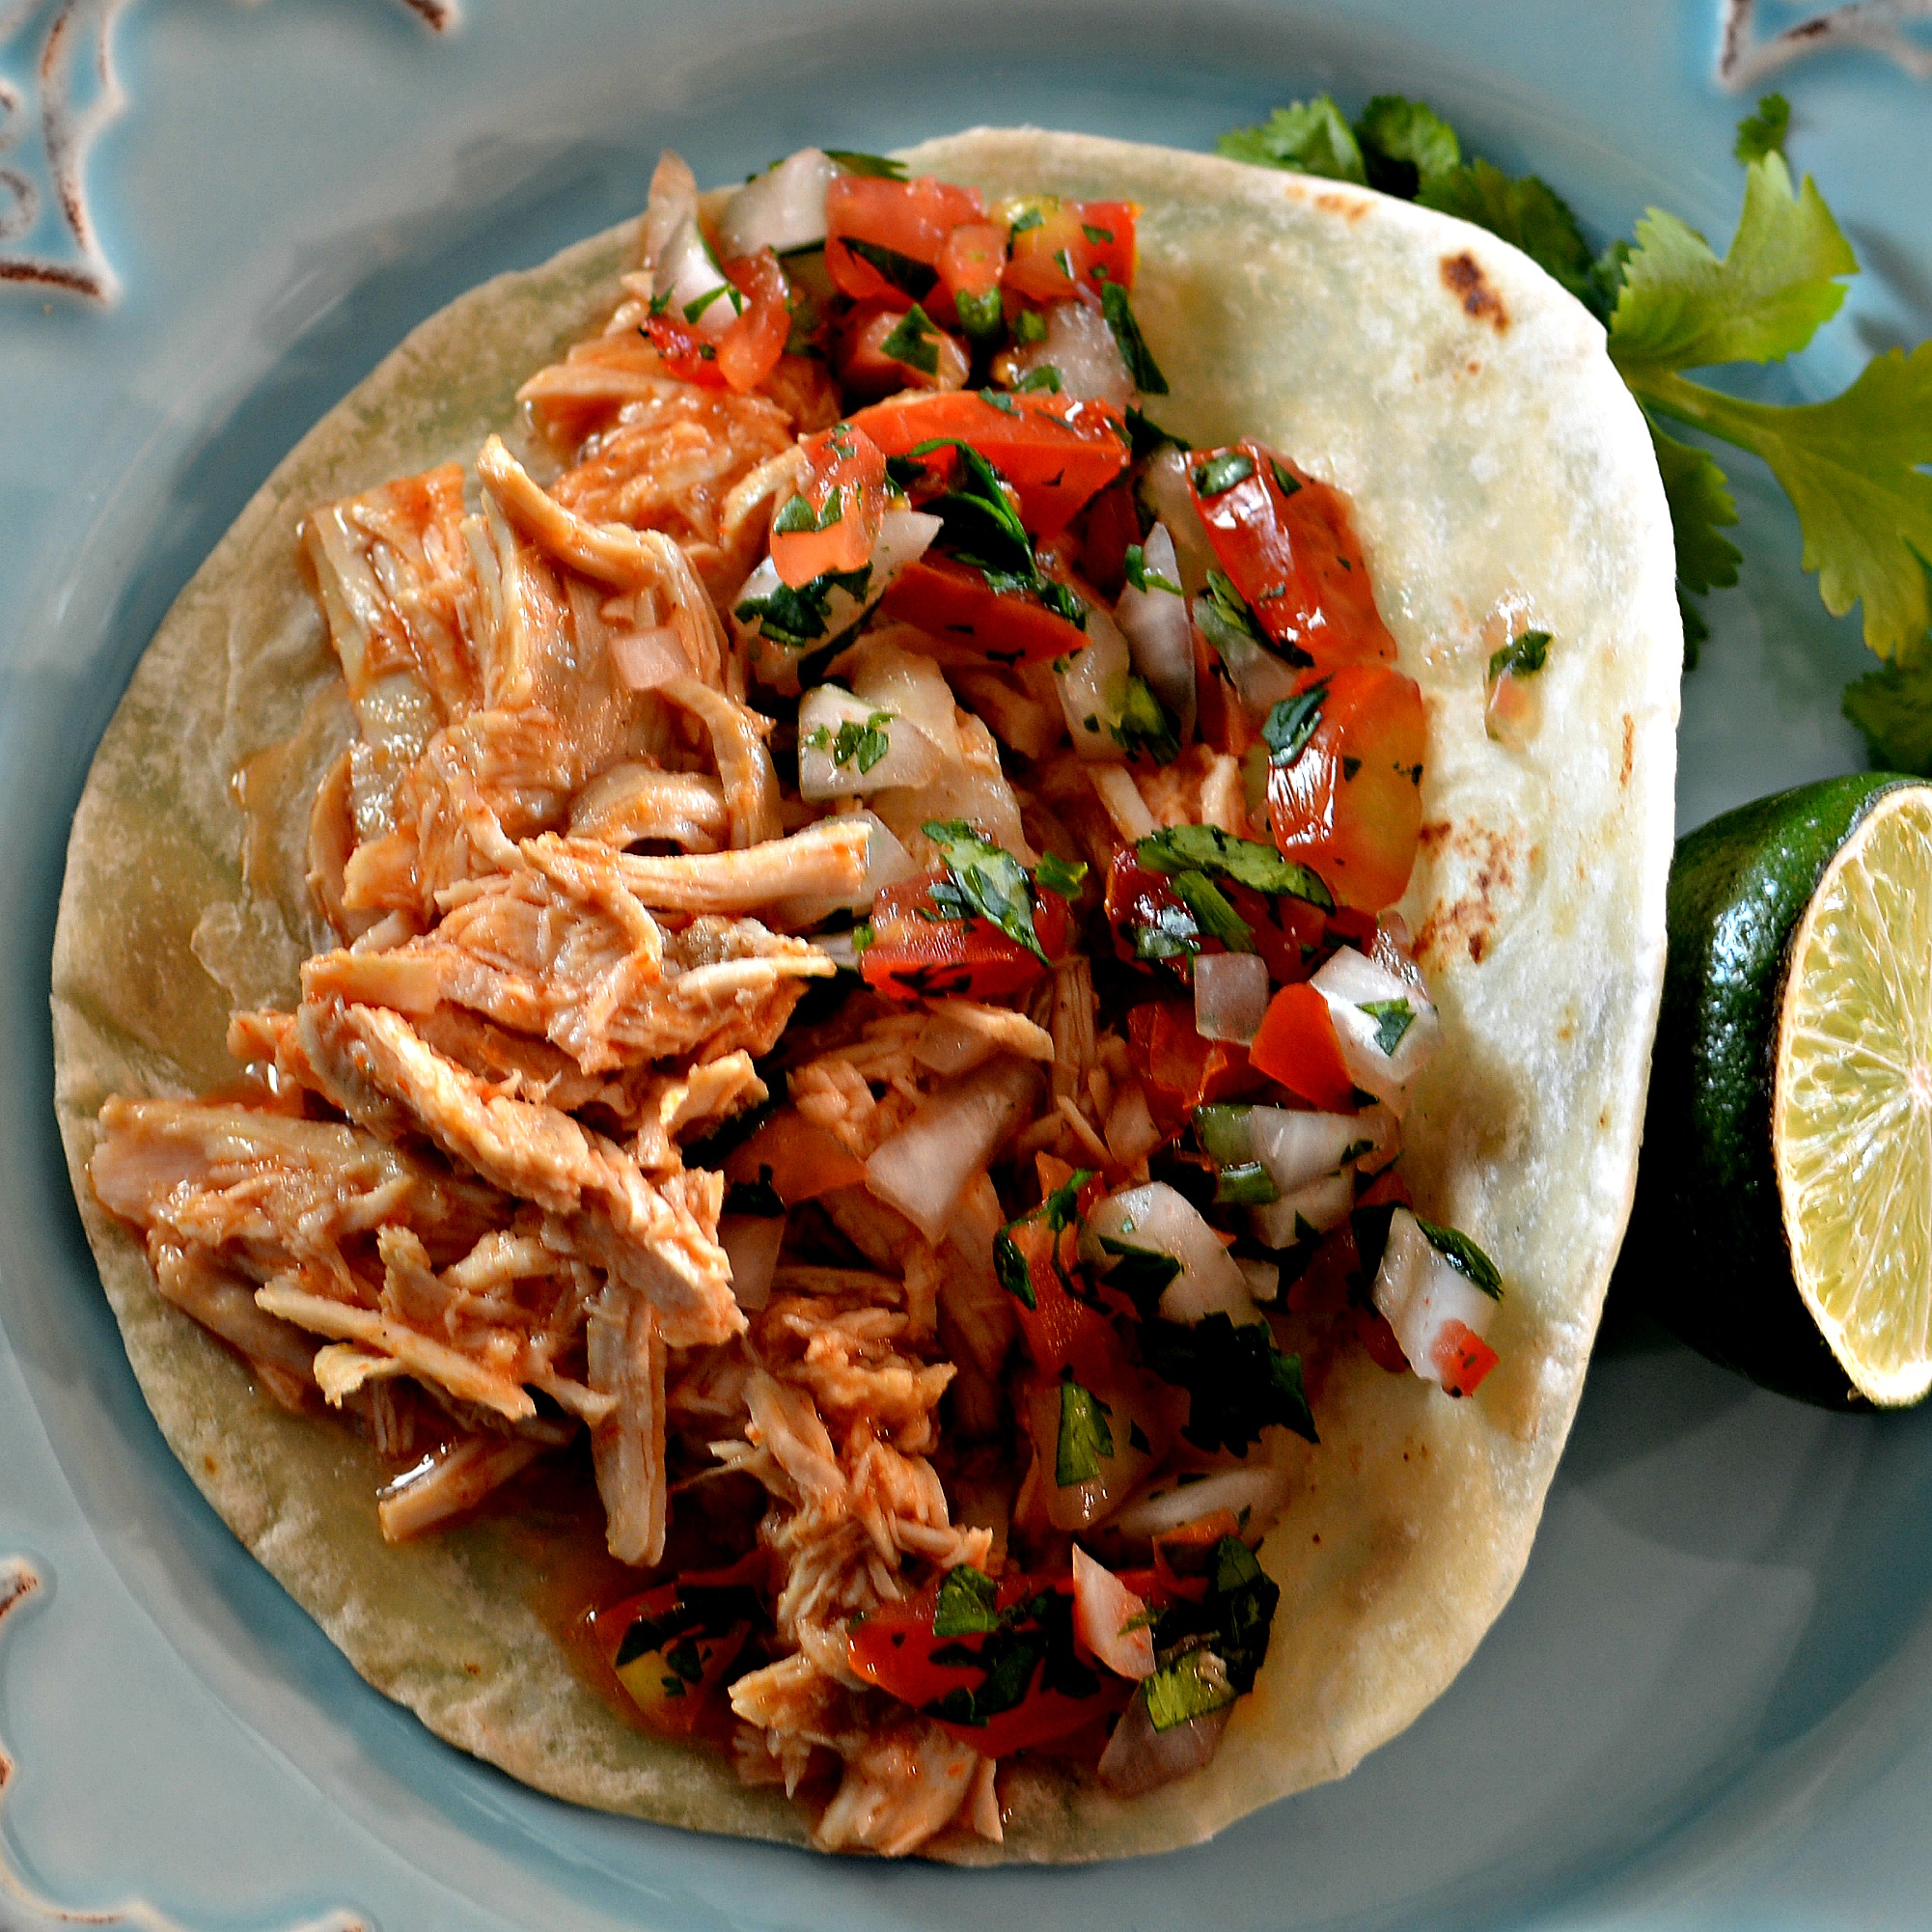 Sarah S Easy Shredded Chicken Taco Filling Recipe Allrecipes